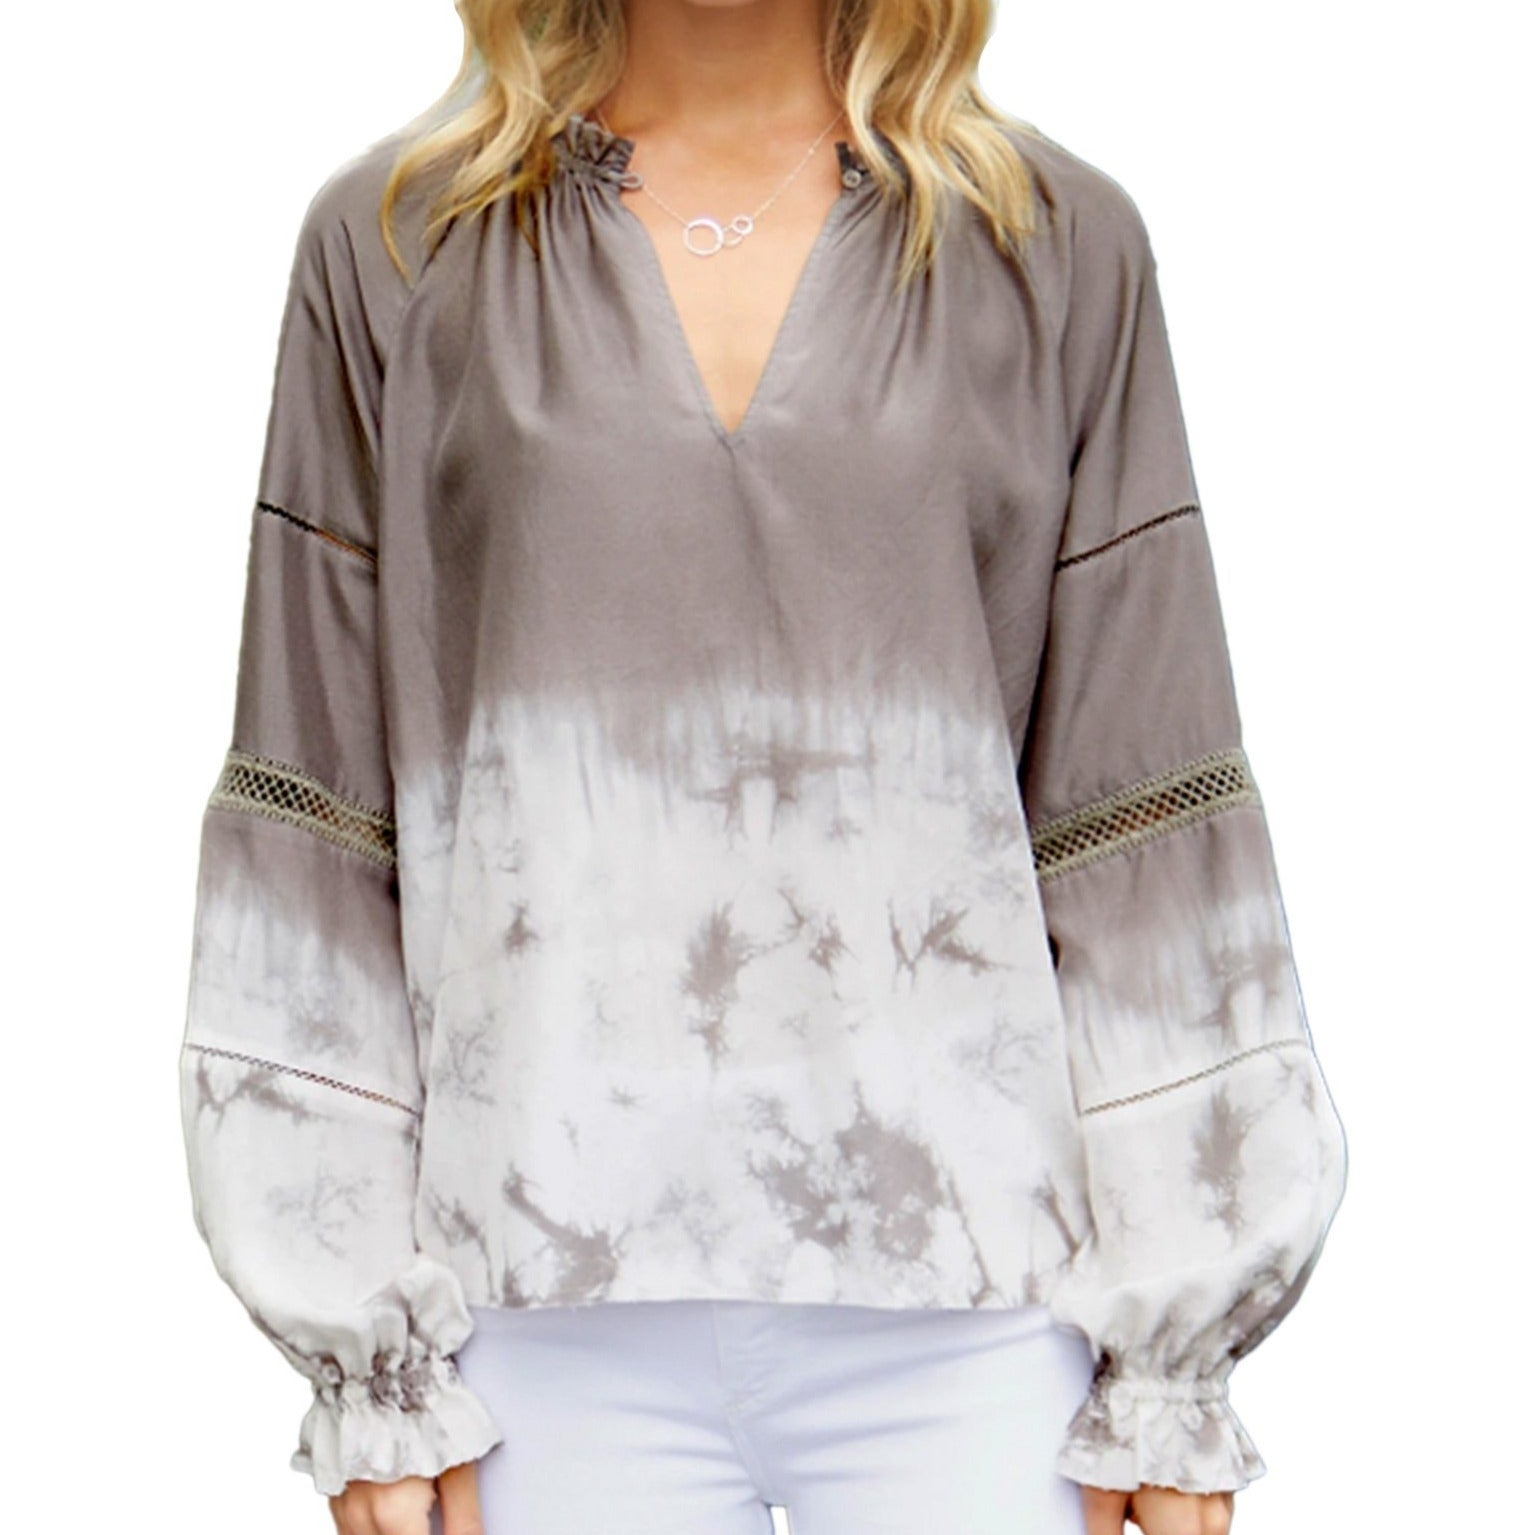 A tie dyed silk top, in a warm suede to white ombre effect by Go Silk.